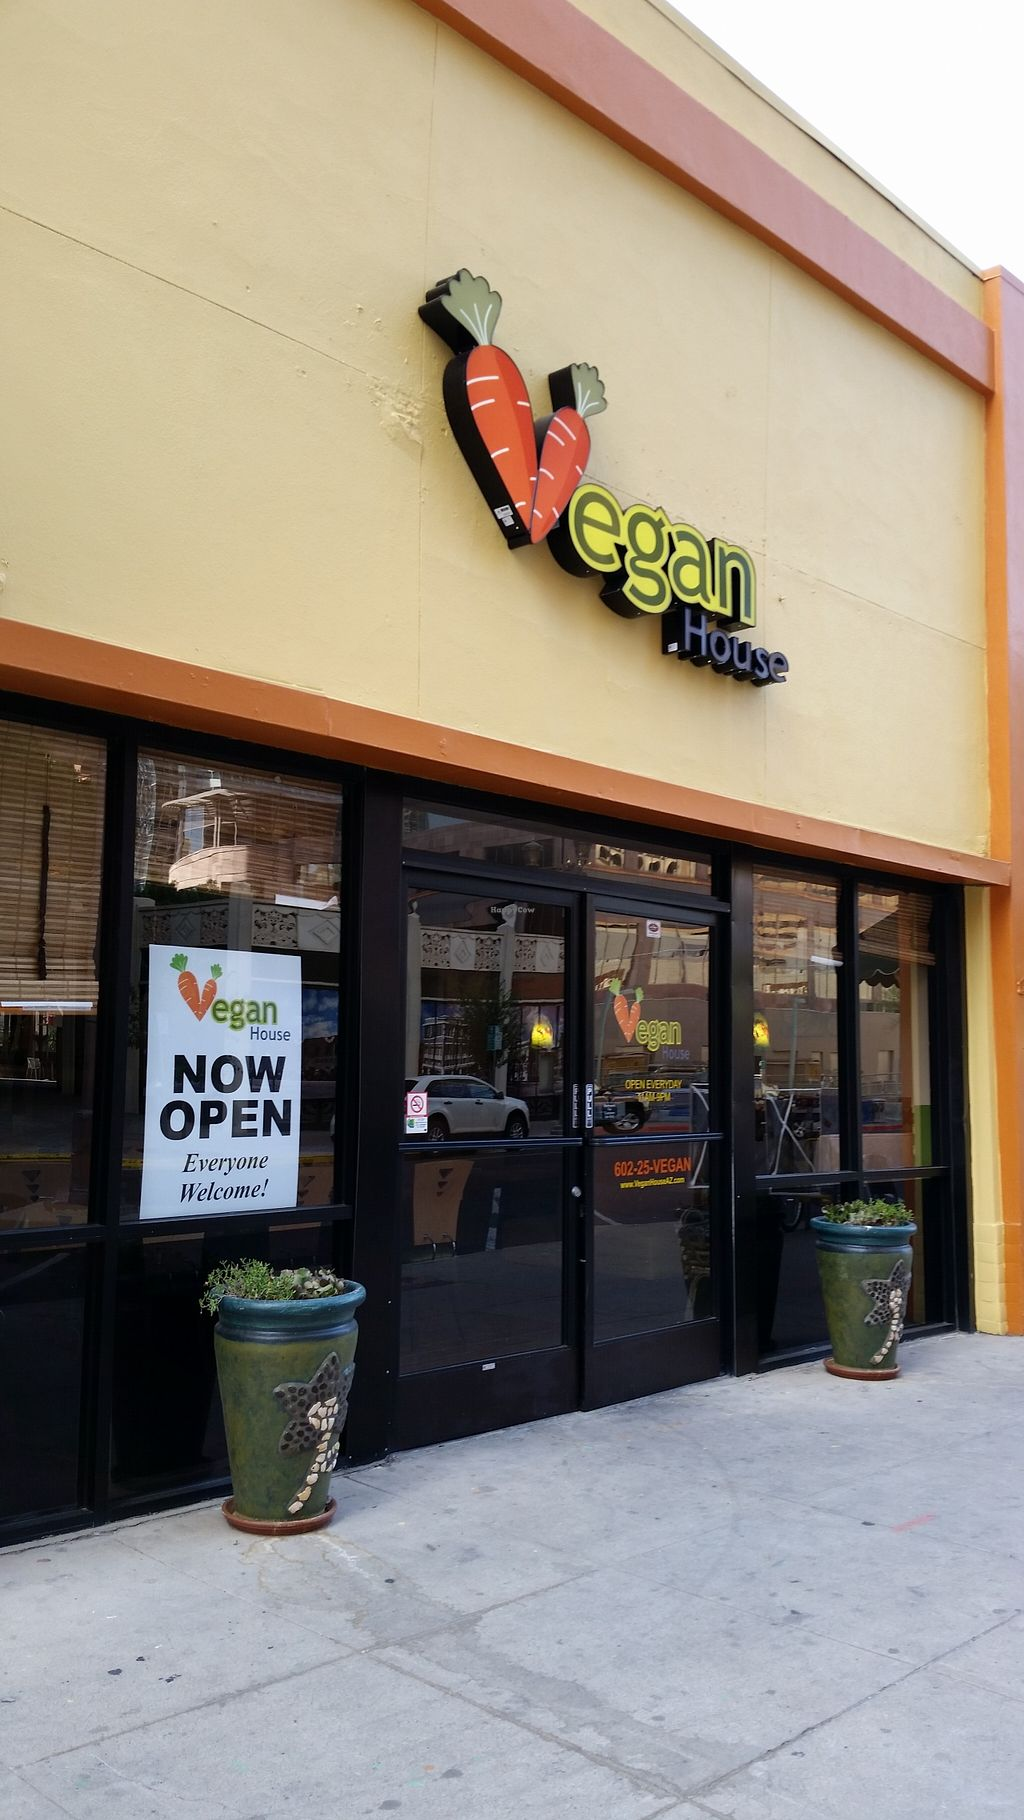 """Photo of Vegan House  by <a href=""""/members/profile/jlo5616"""">jlo5616</a> <br/>Storefront on Adams Street <br/> September 18, 2015  - <a href='/contact/abuse/image/57294/118292'>Report</a>"""